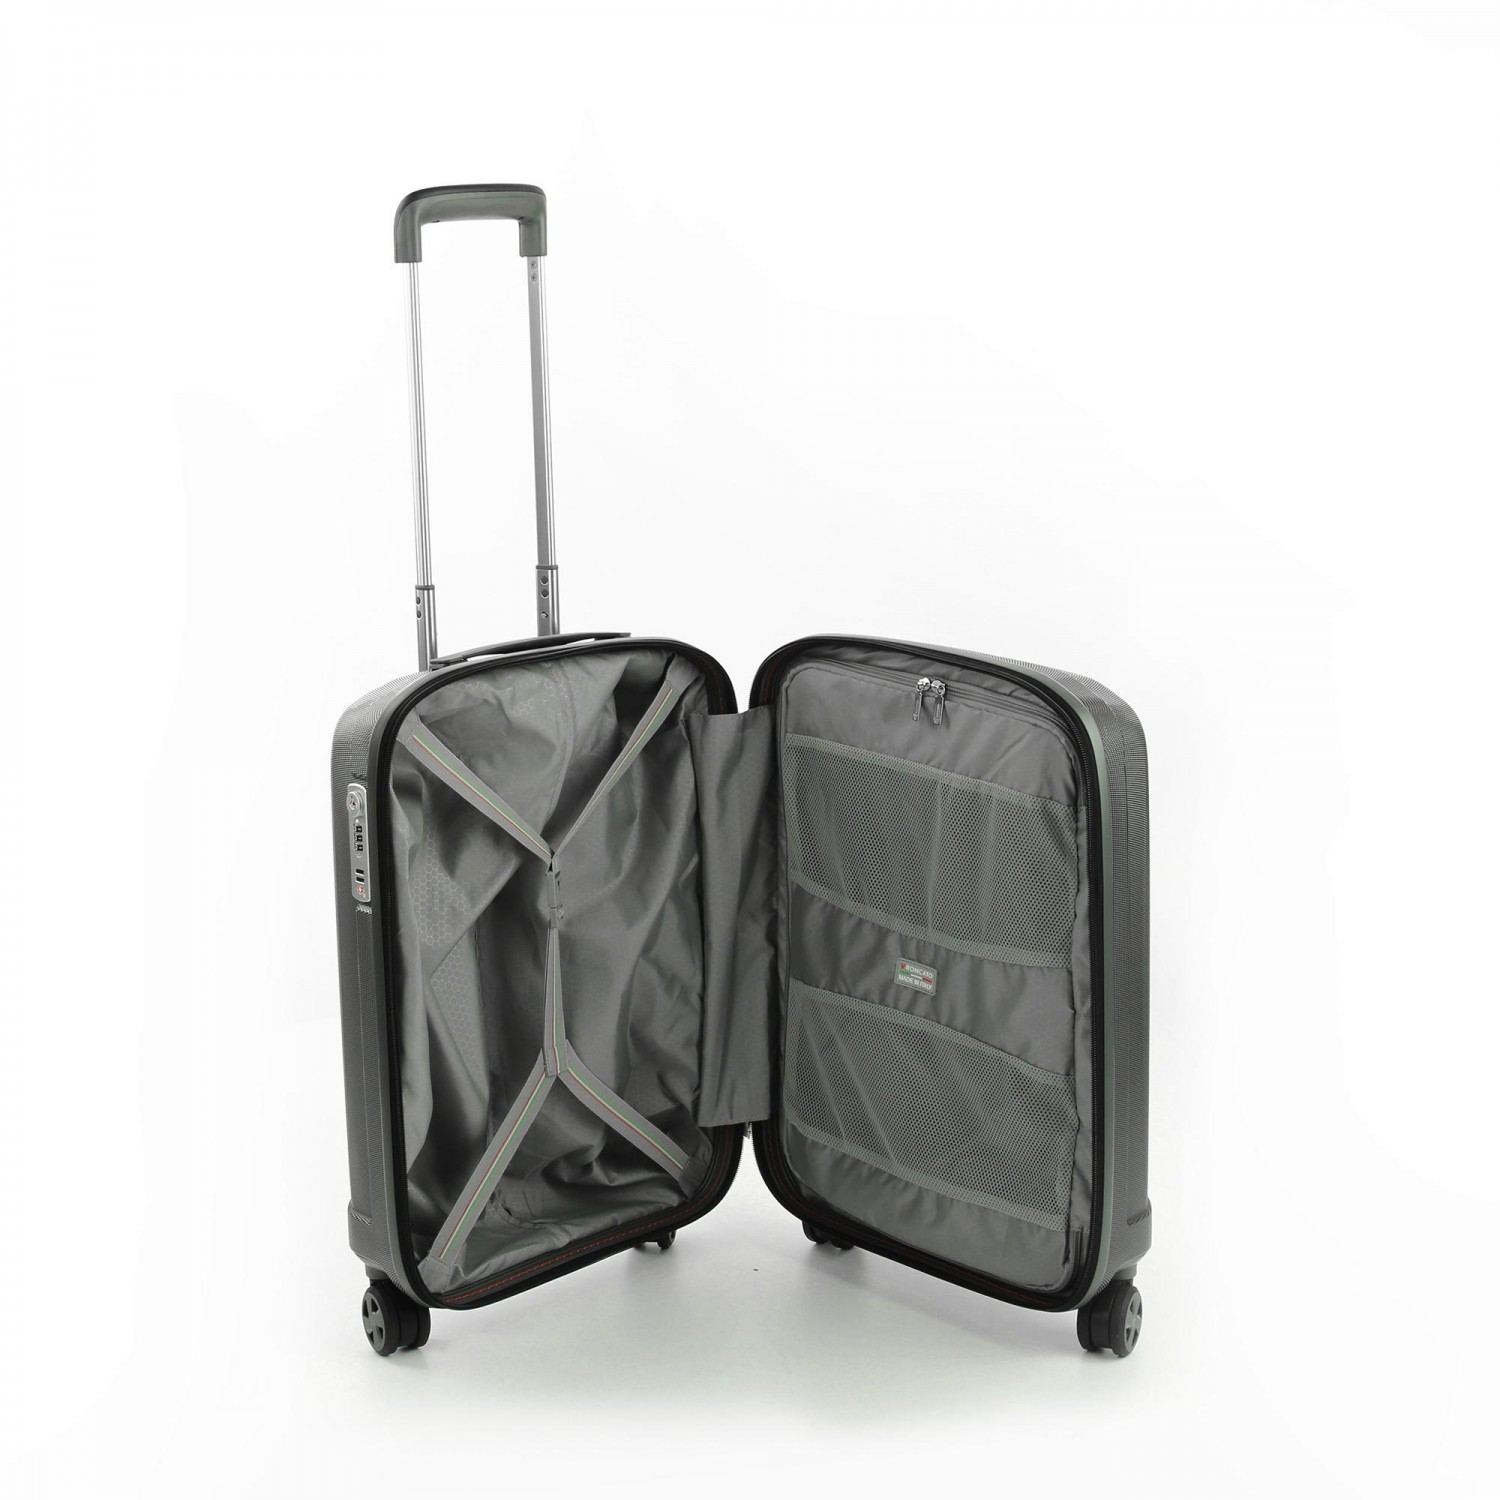 Чемодан пластиковый Roncato UNICA XS TROLLEY 55/20 CM ANTRACITE